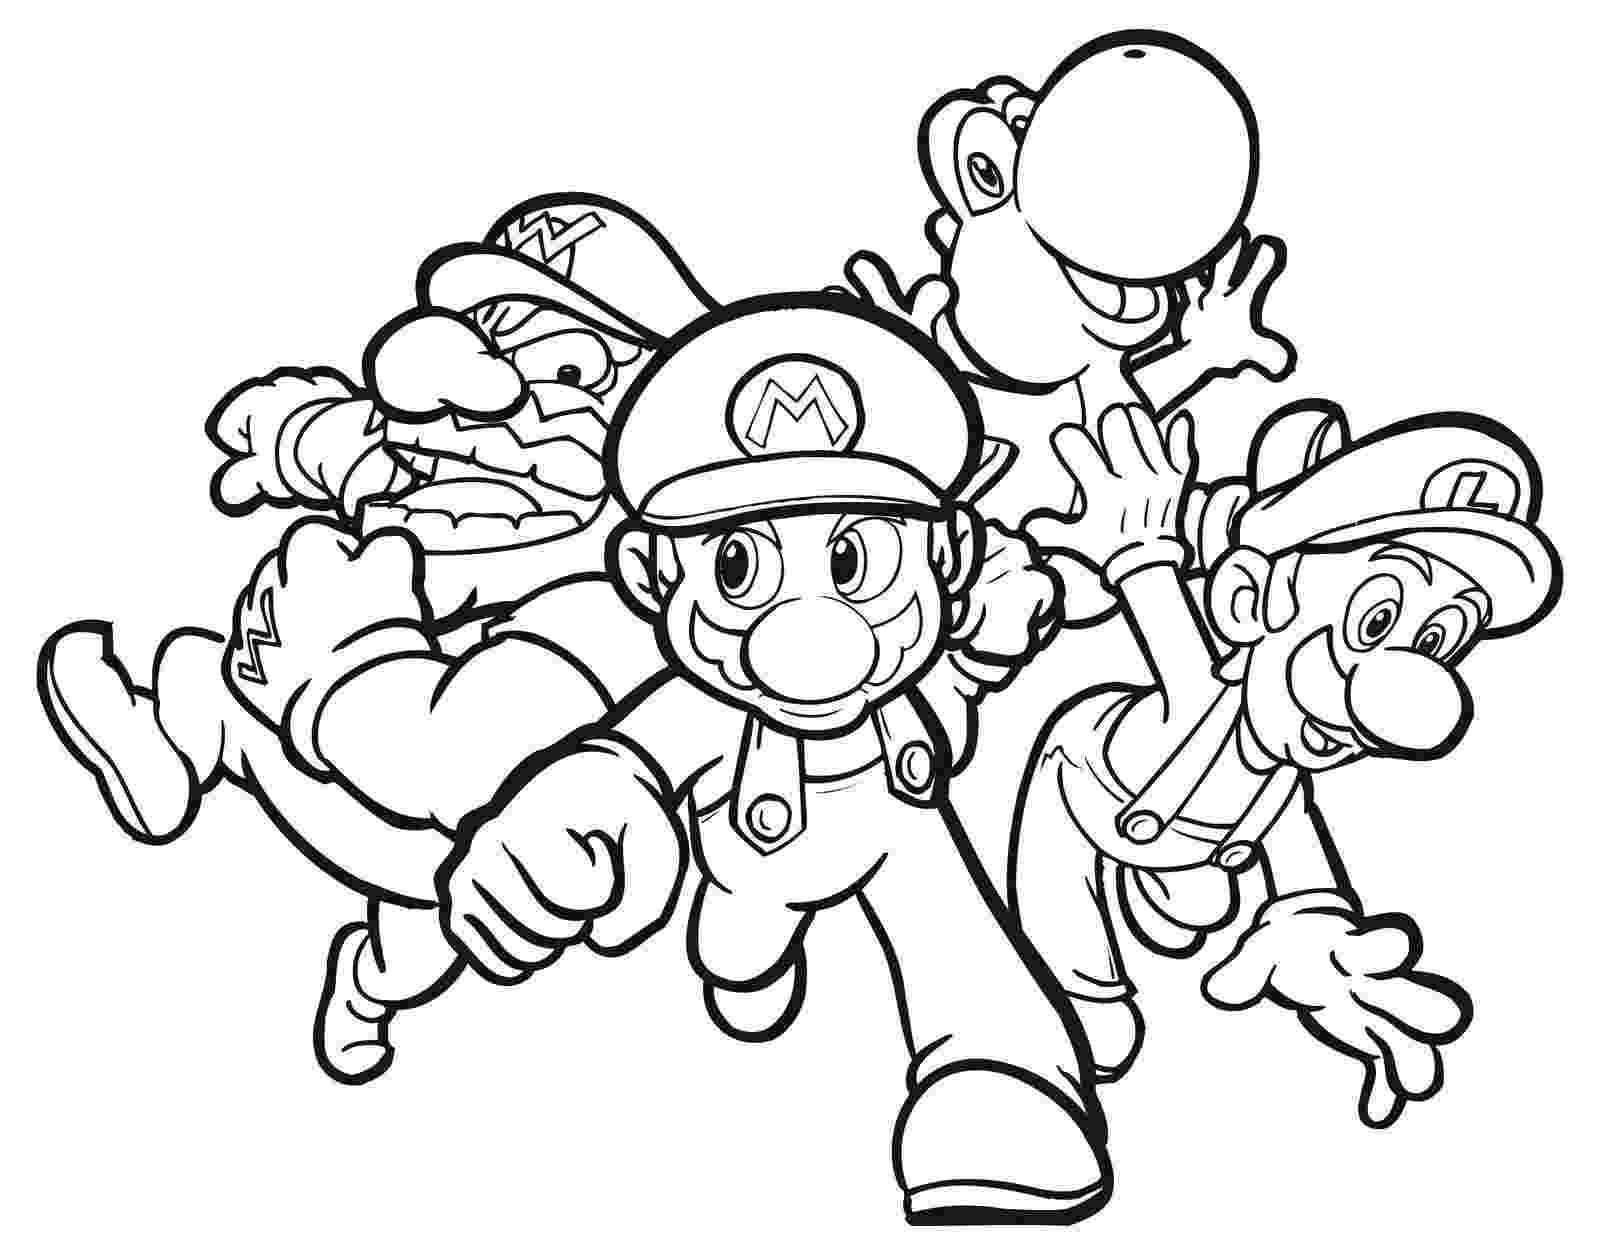 free mario coloring pages mario coloring pages to print minister coloring free pages coloring mario